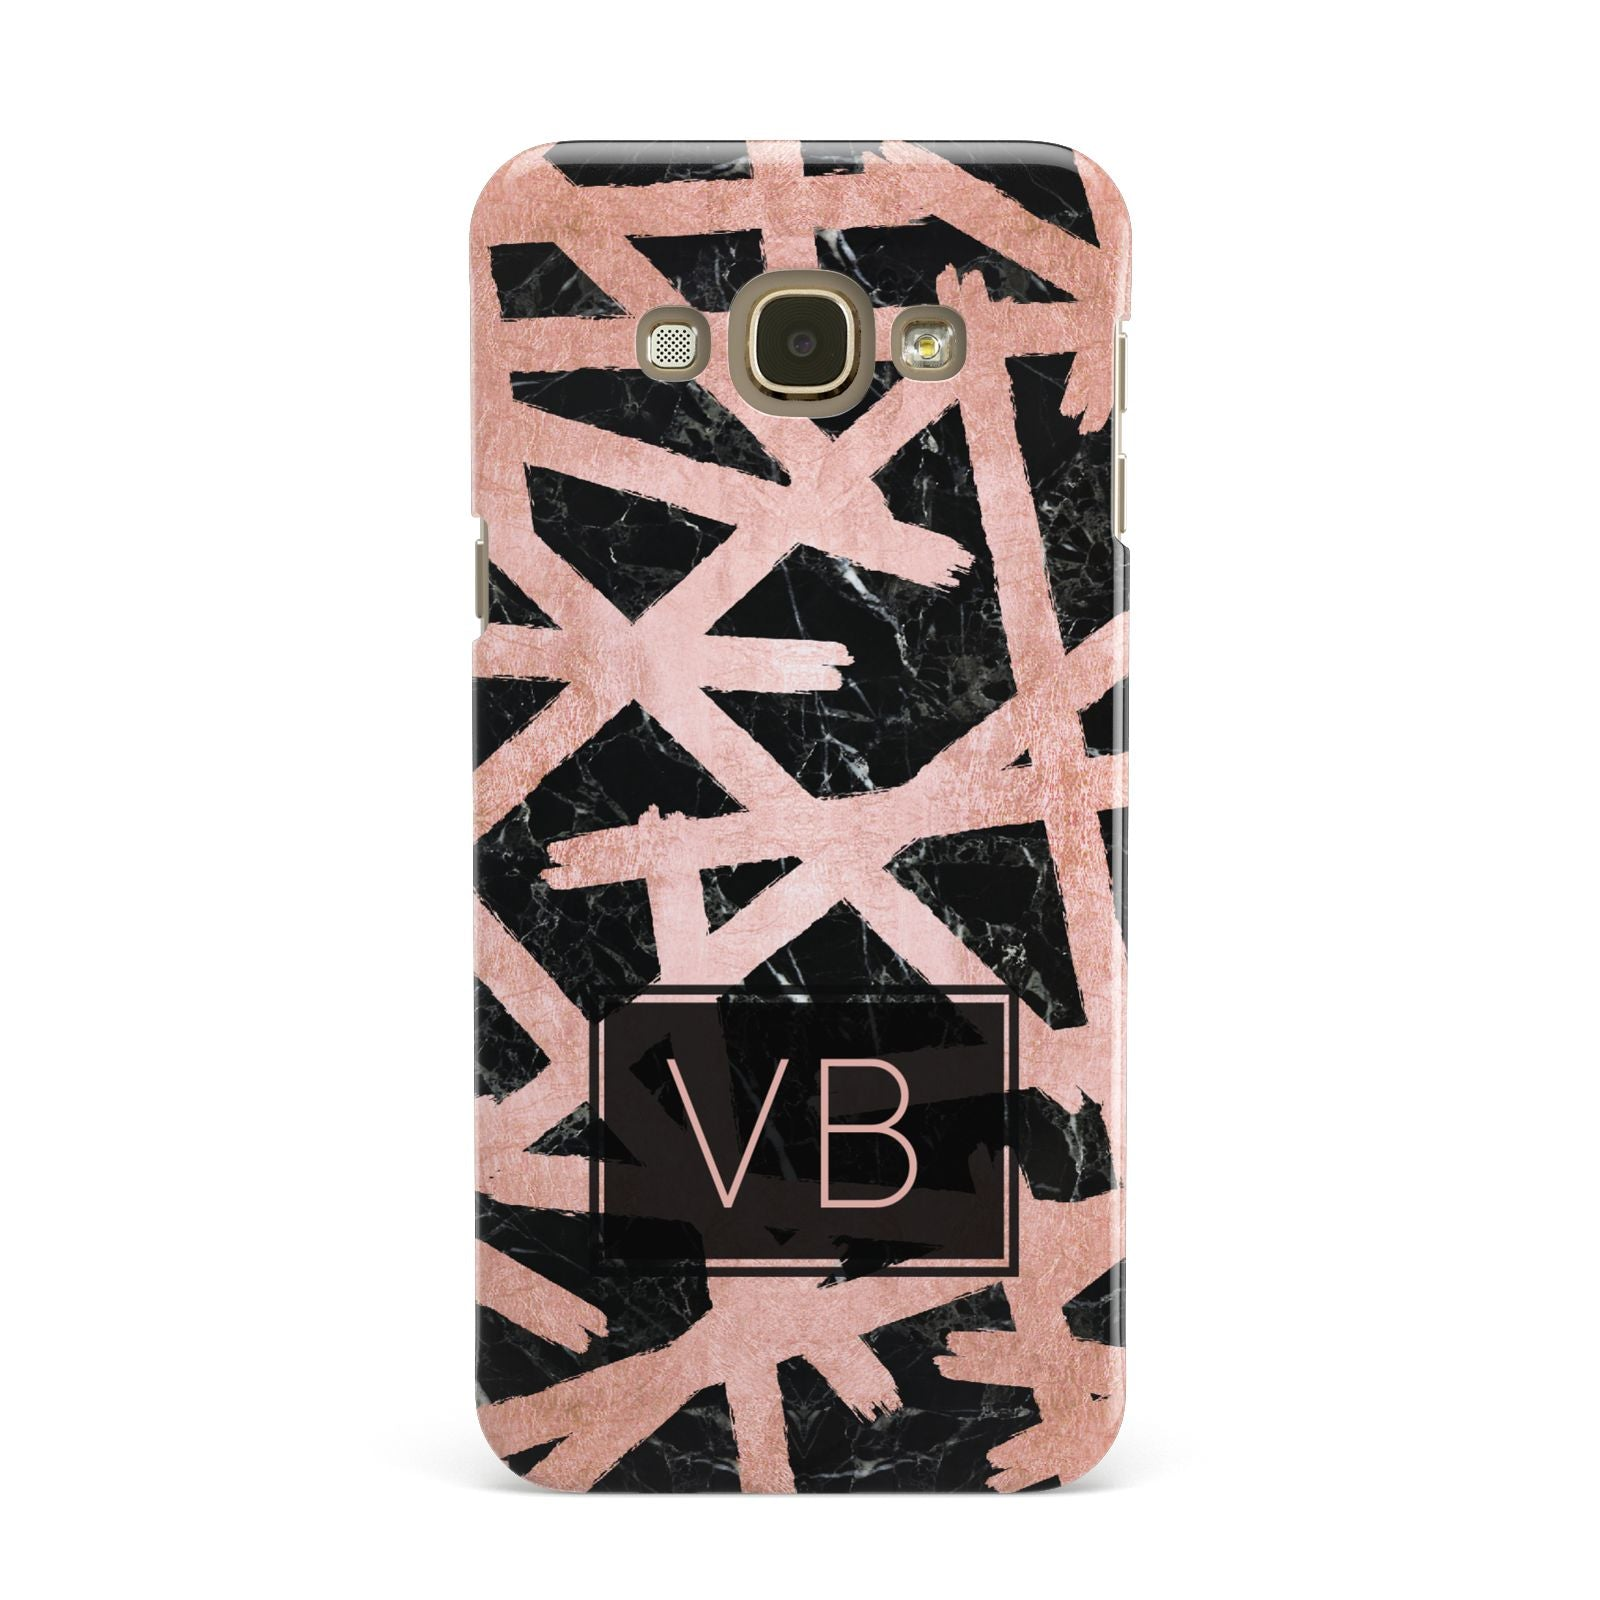 Personalised Rose Gold Effect Samsung Galaxy A8 Case